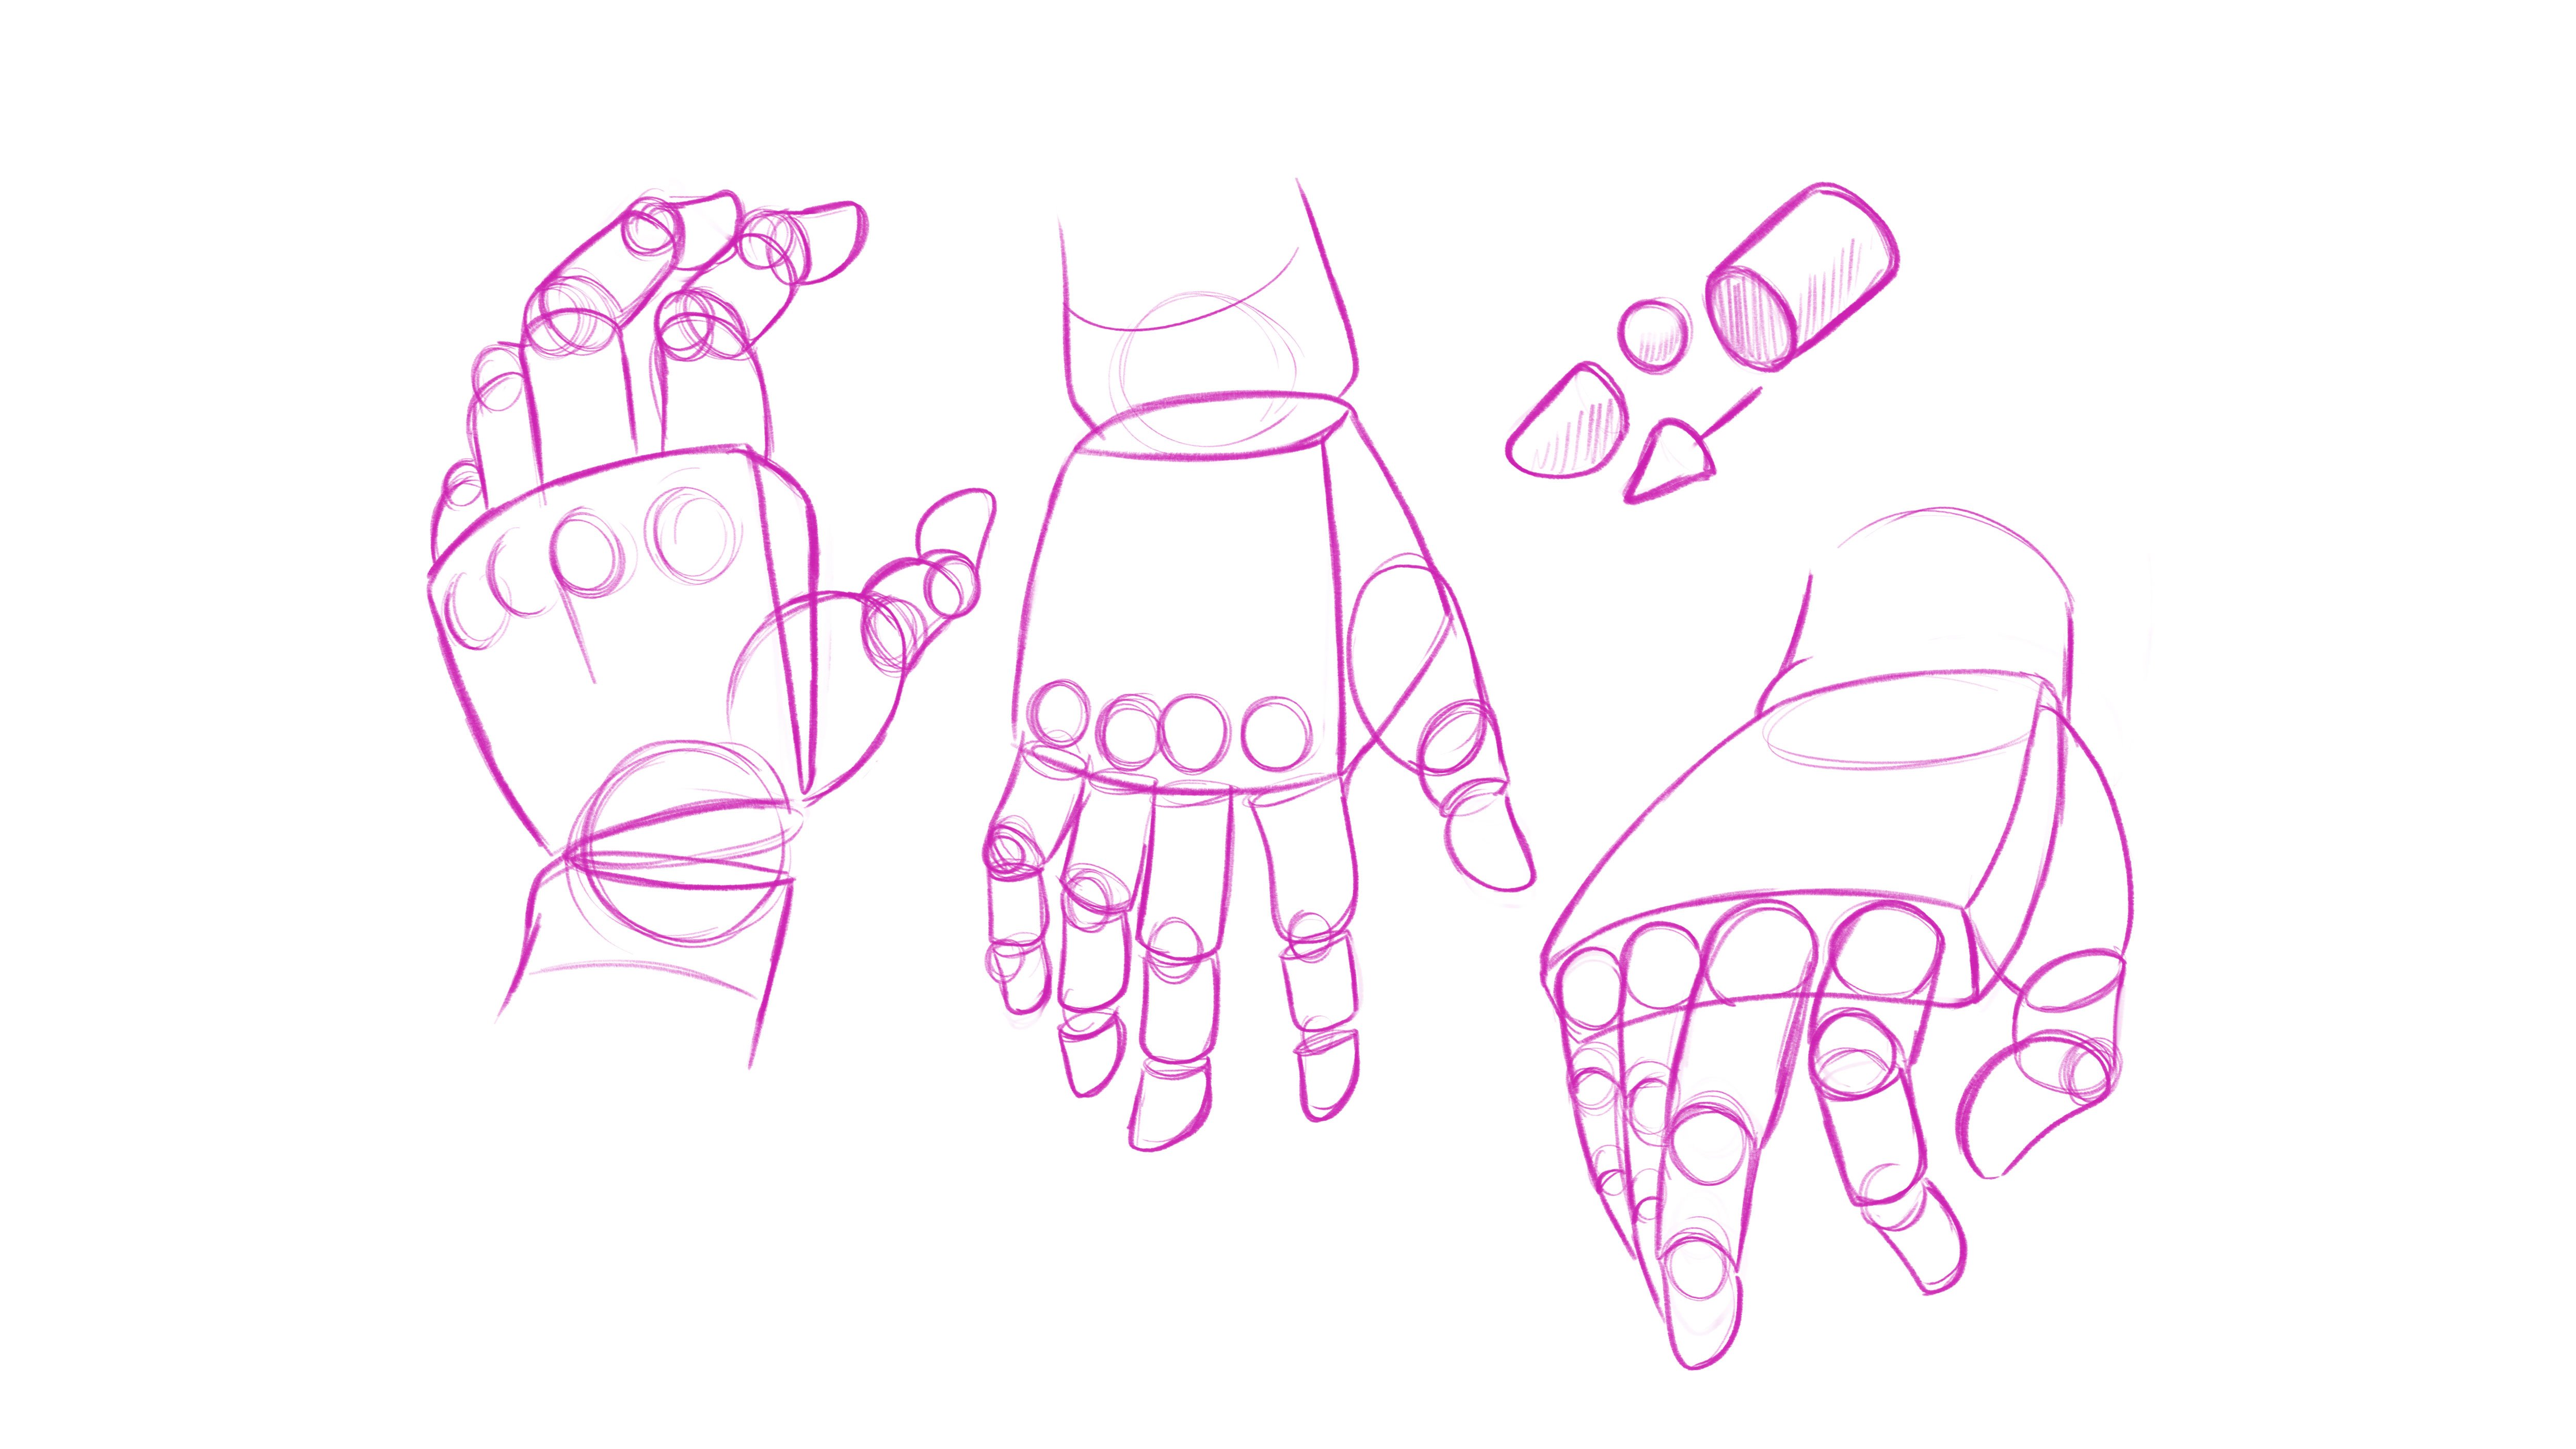 How to draw hands: pose the shapes